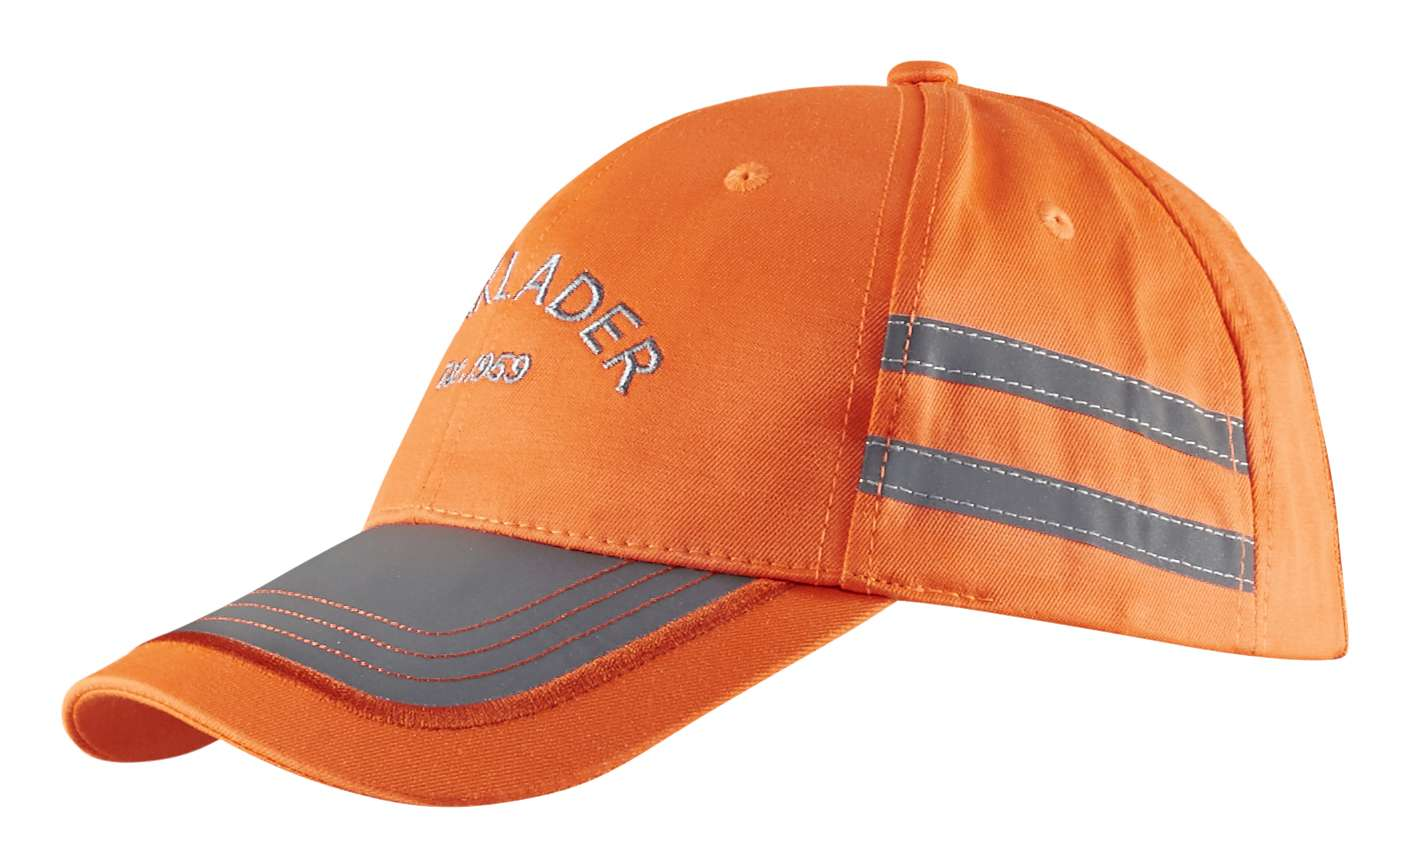 Blaklader Caps 86101002 High Vis oranje(5300)